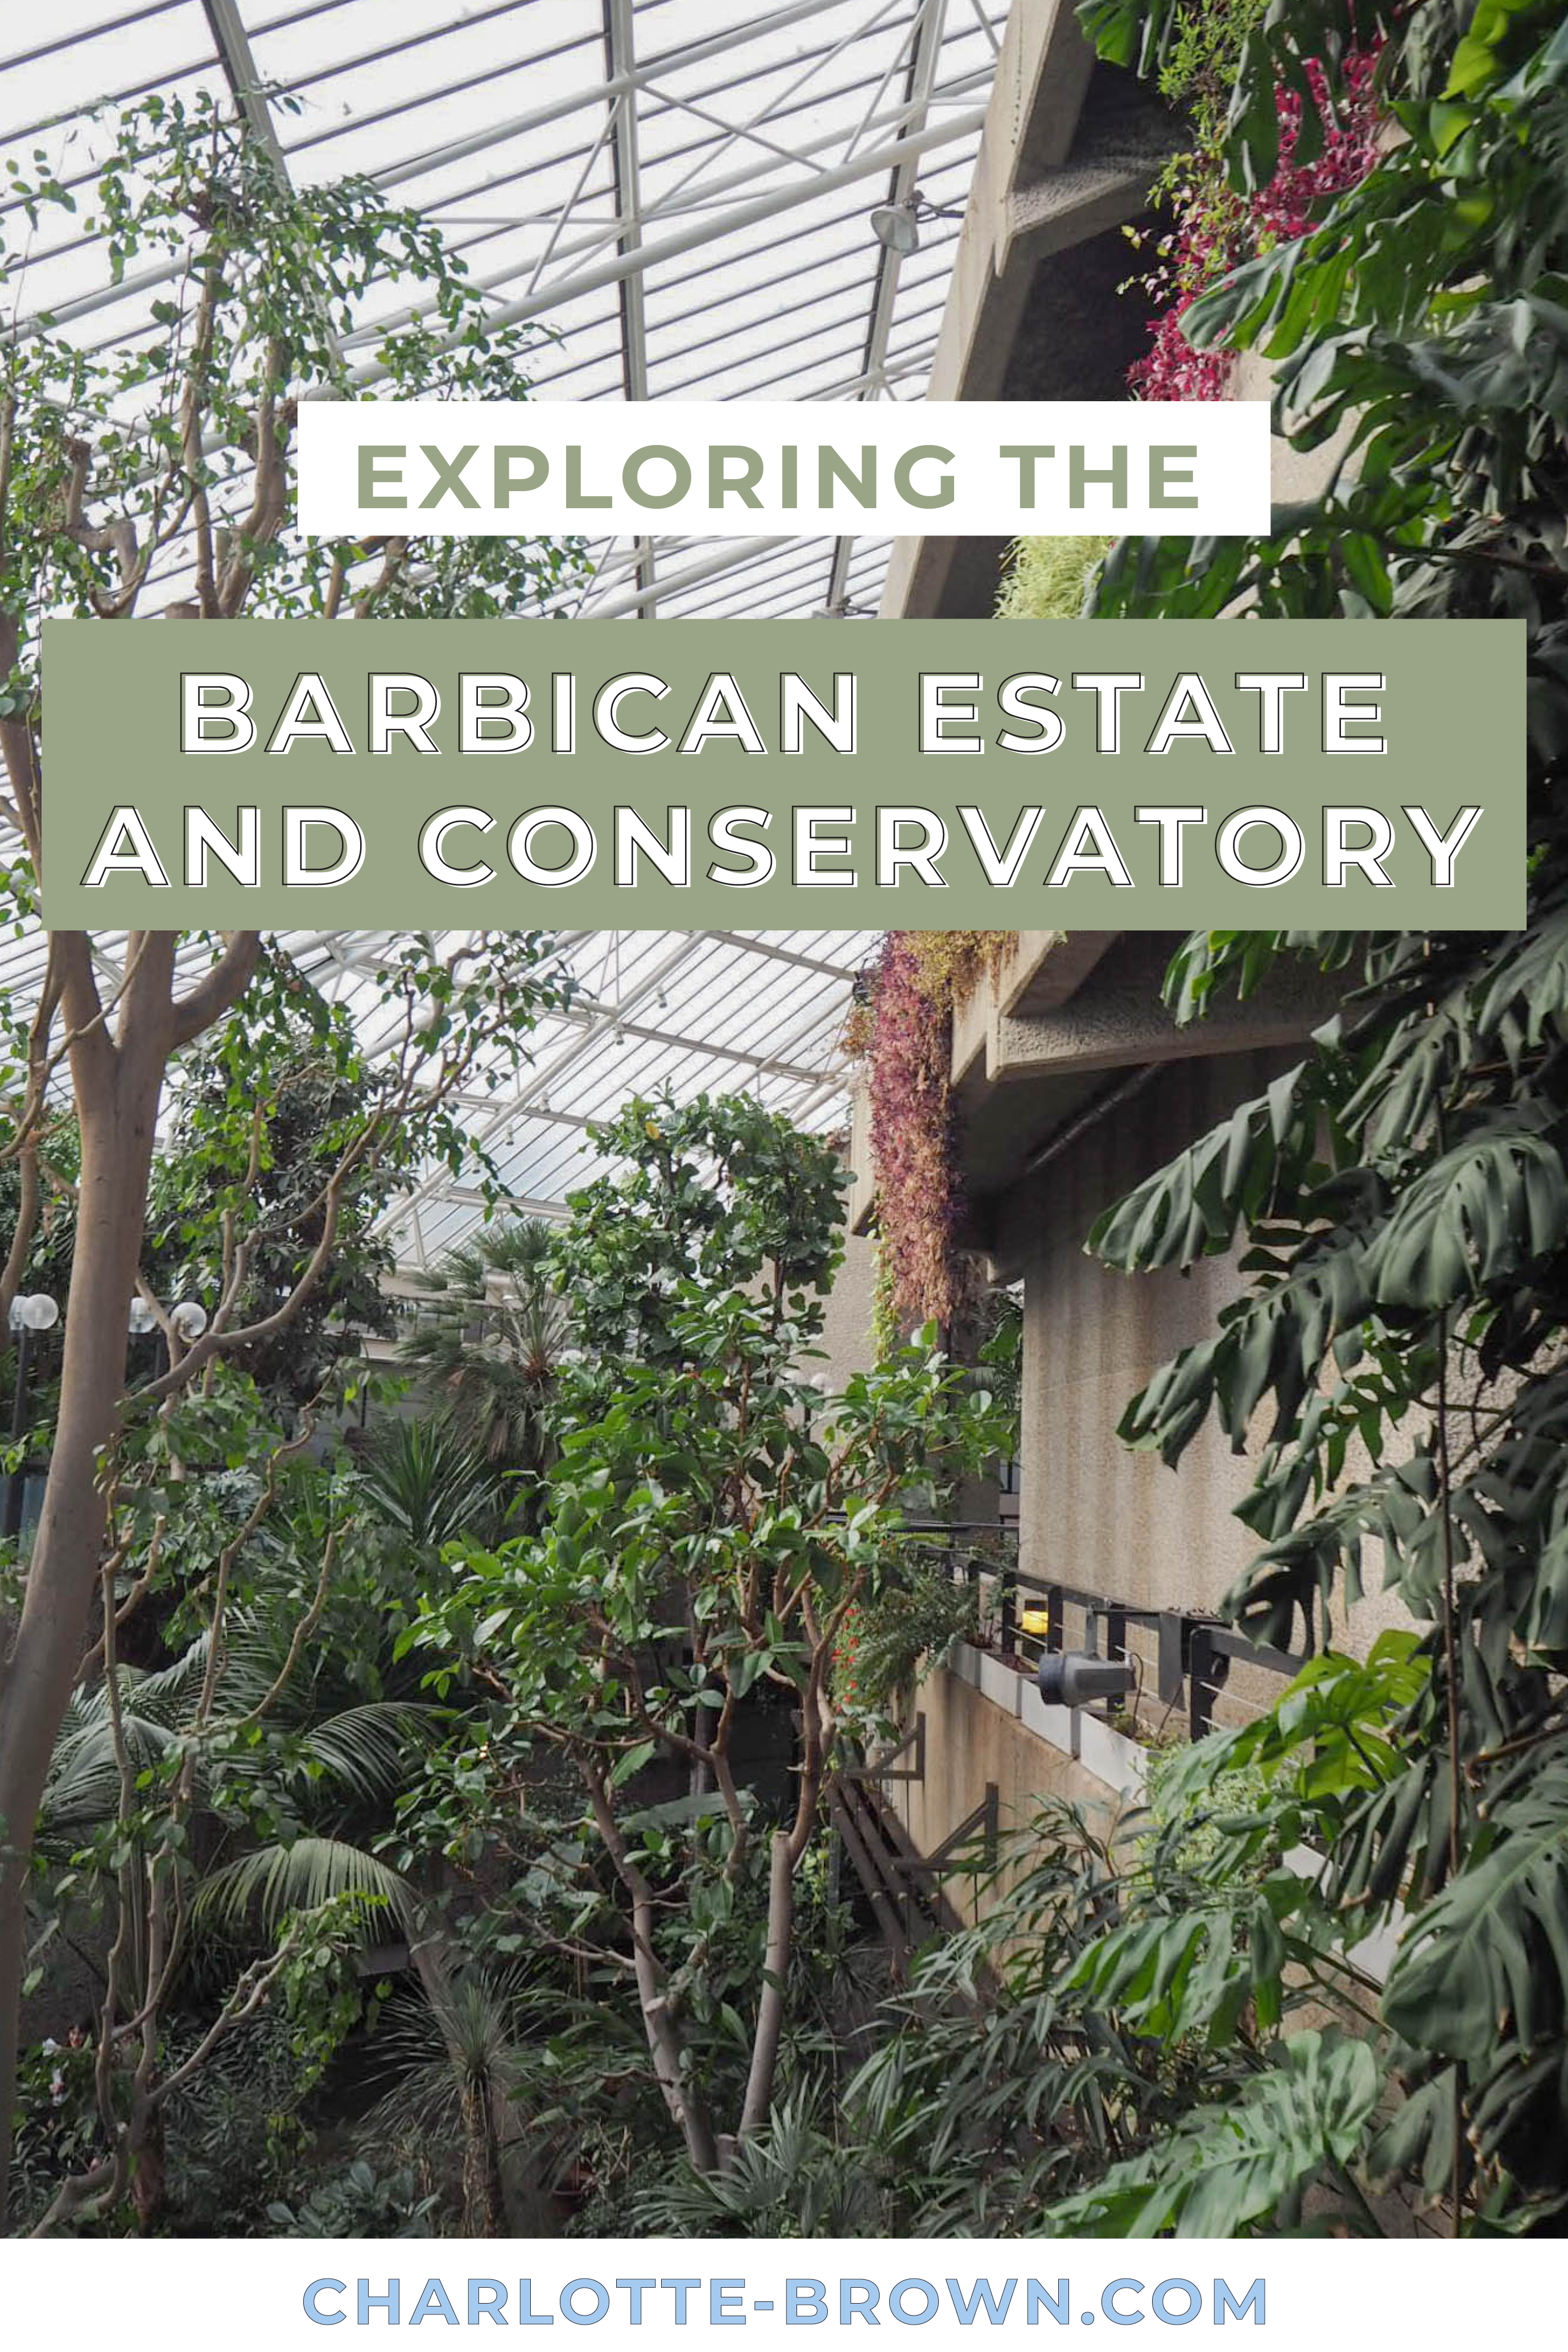 Pinterest Pin for my blog post on the Barbican Estate and Conservatory